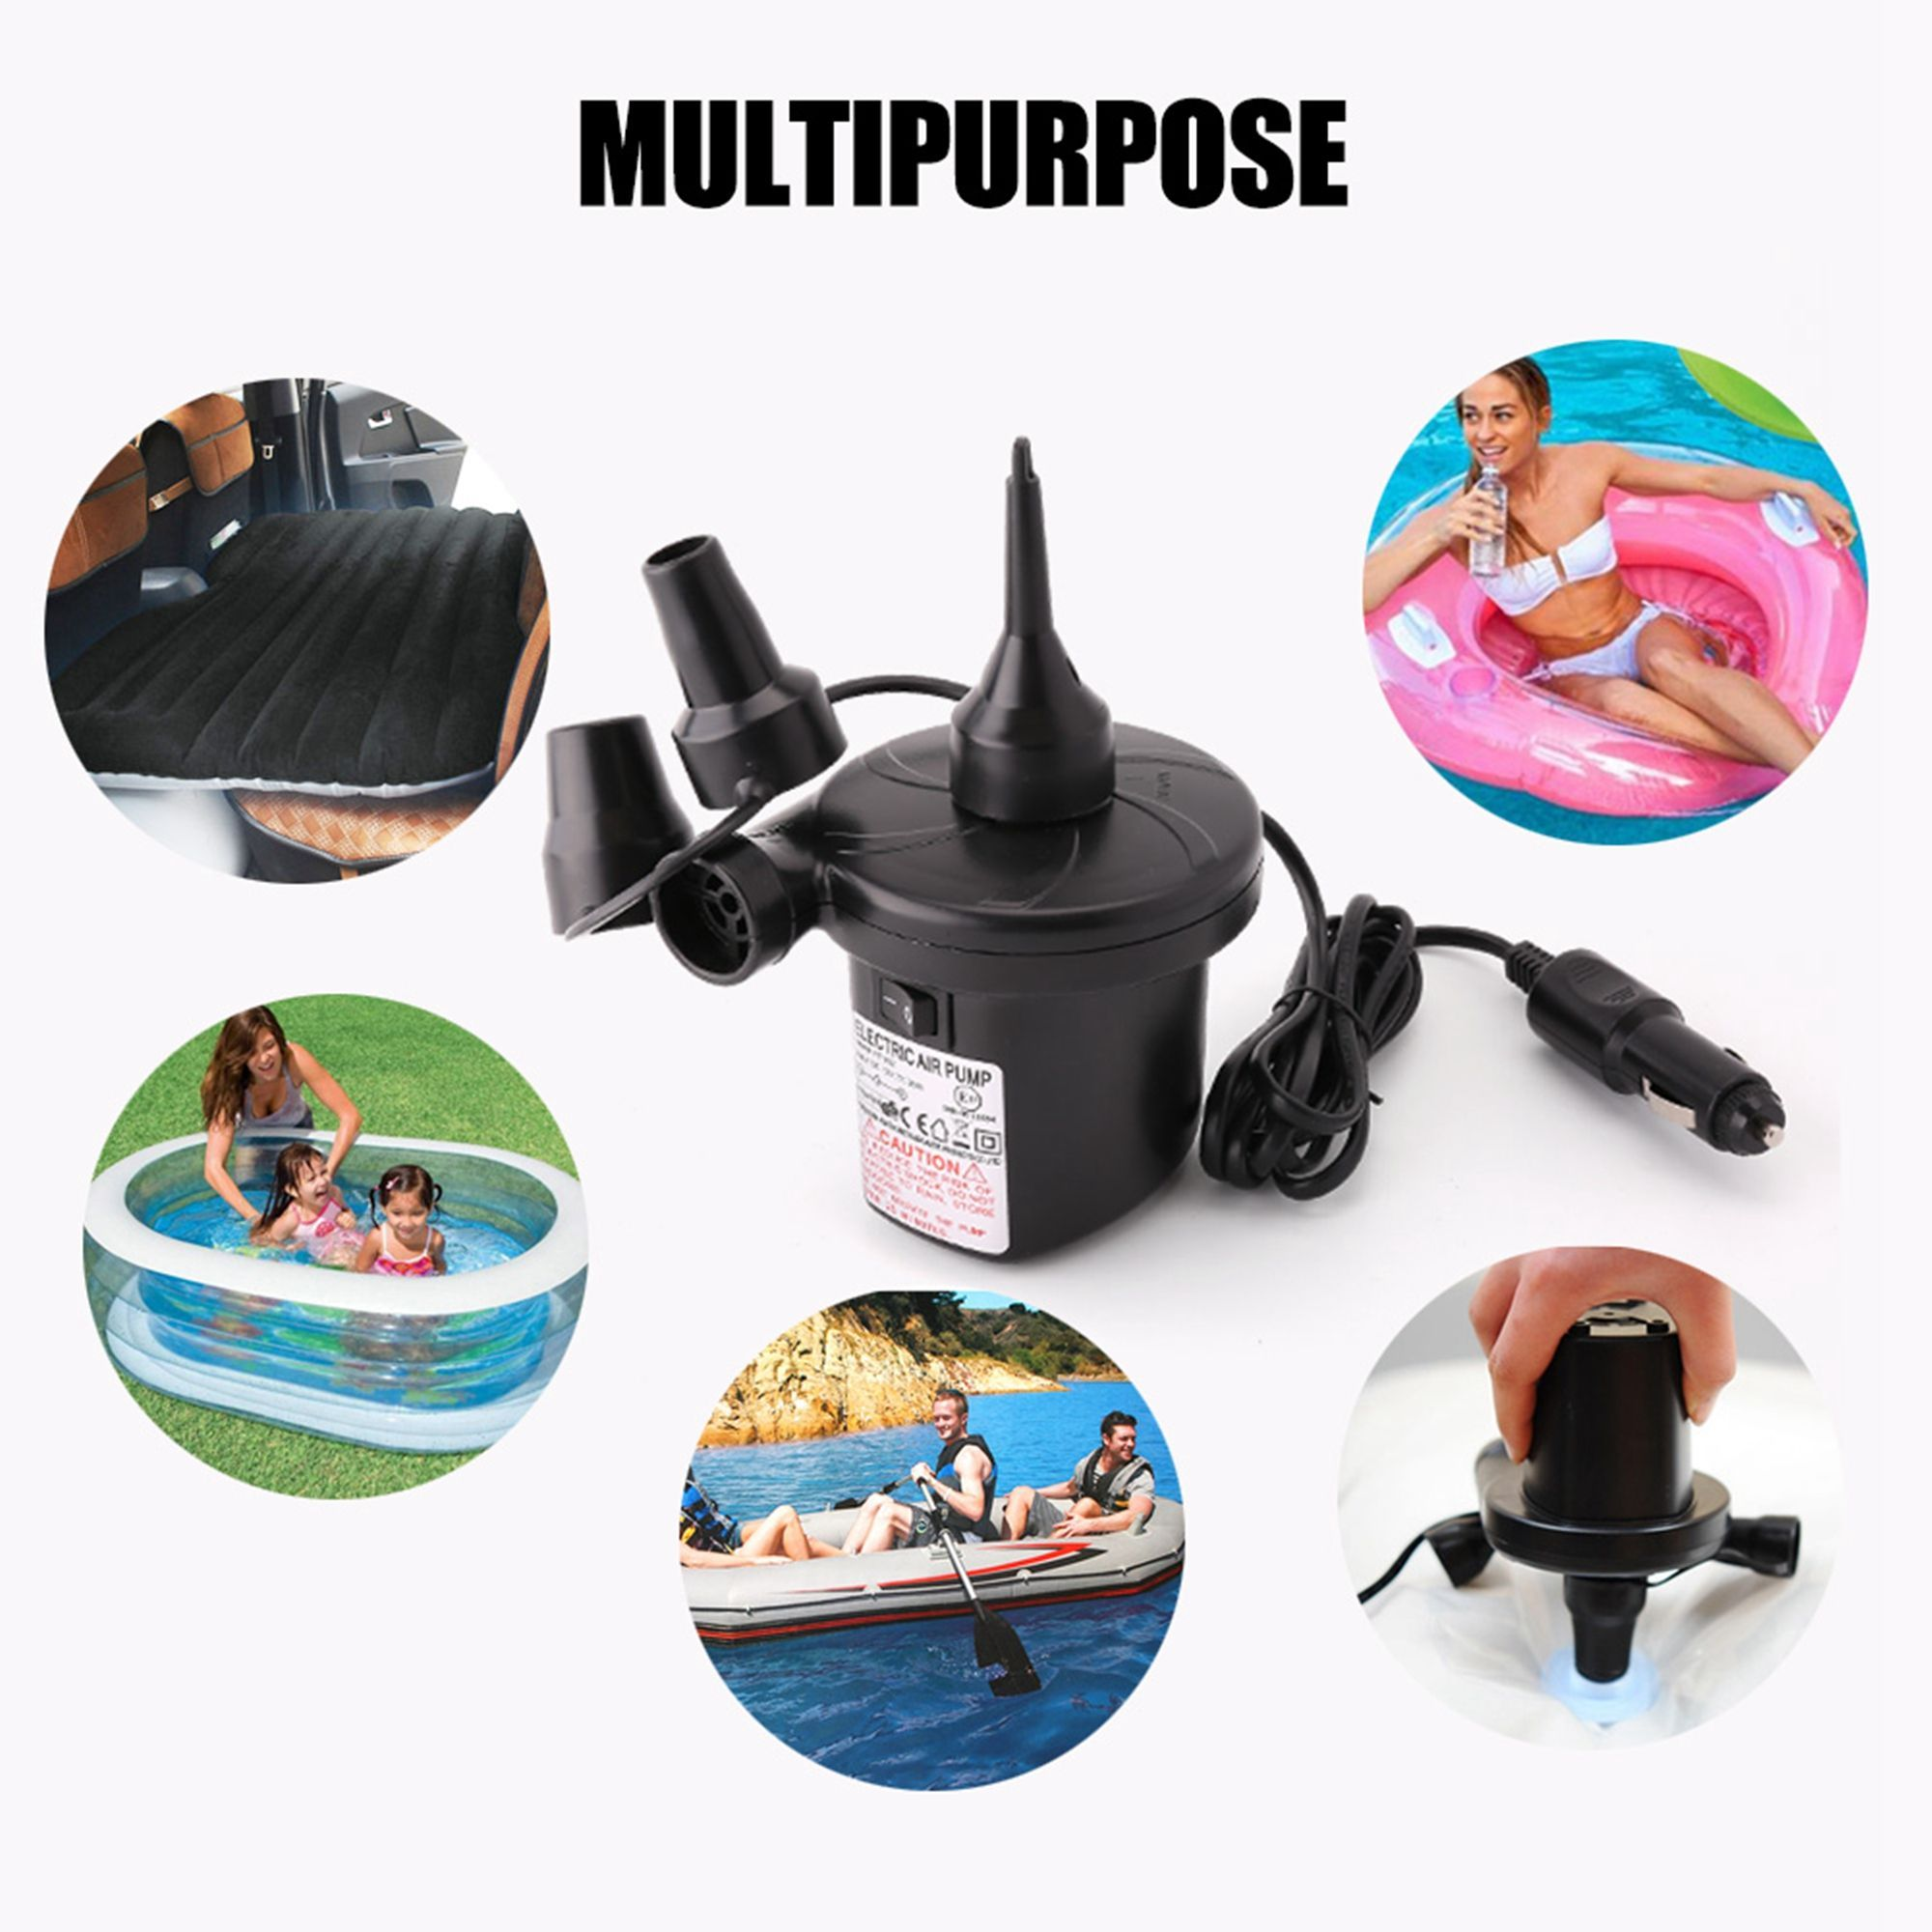 Portable 12v Dc Electric Air Pump For Inflatables Mattress Raft Bed 3 Nozzles Replacement For Intex Pump Inflatable Mattress Inflatable Air Mattress Air Pump